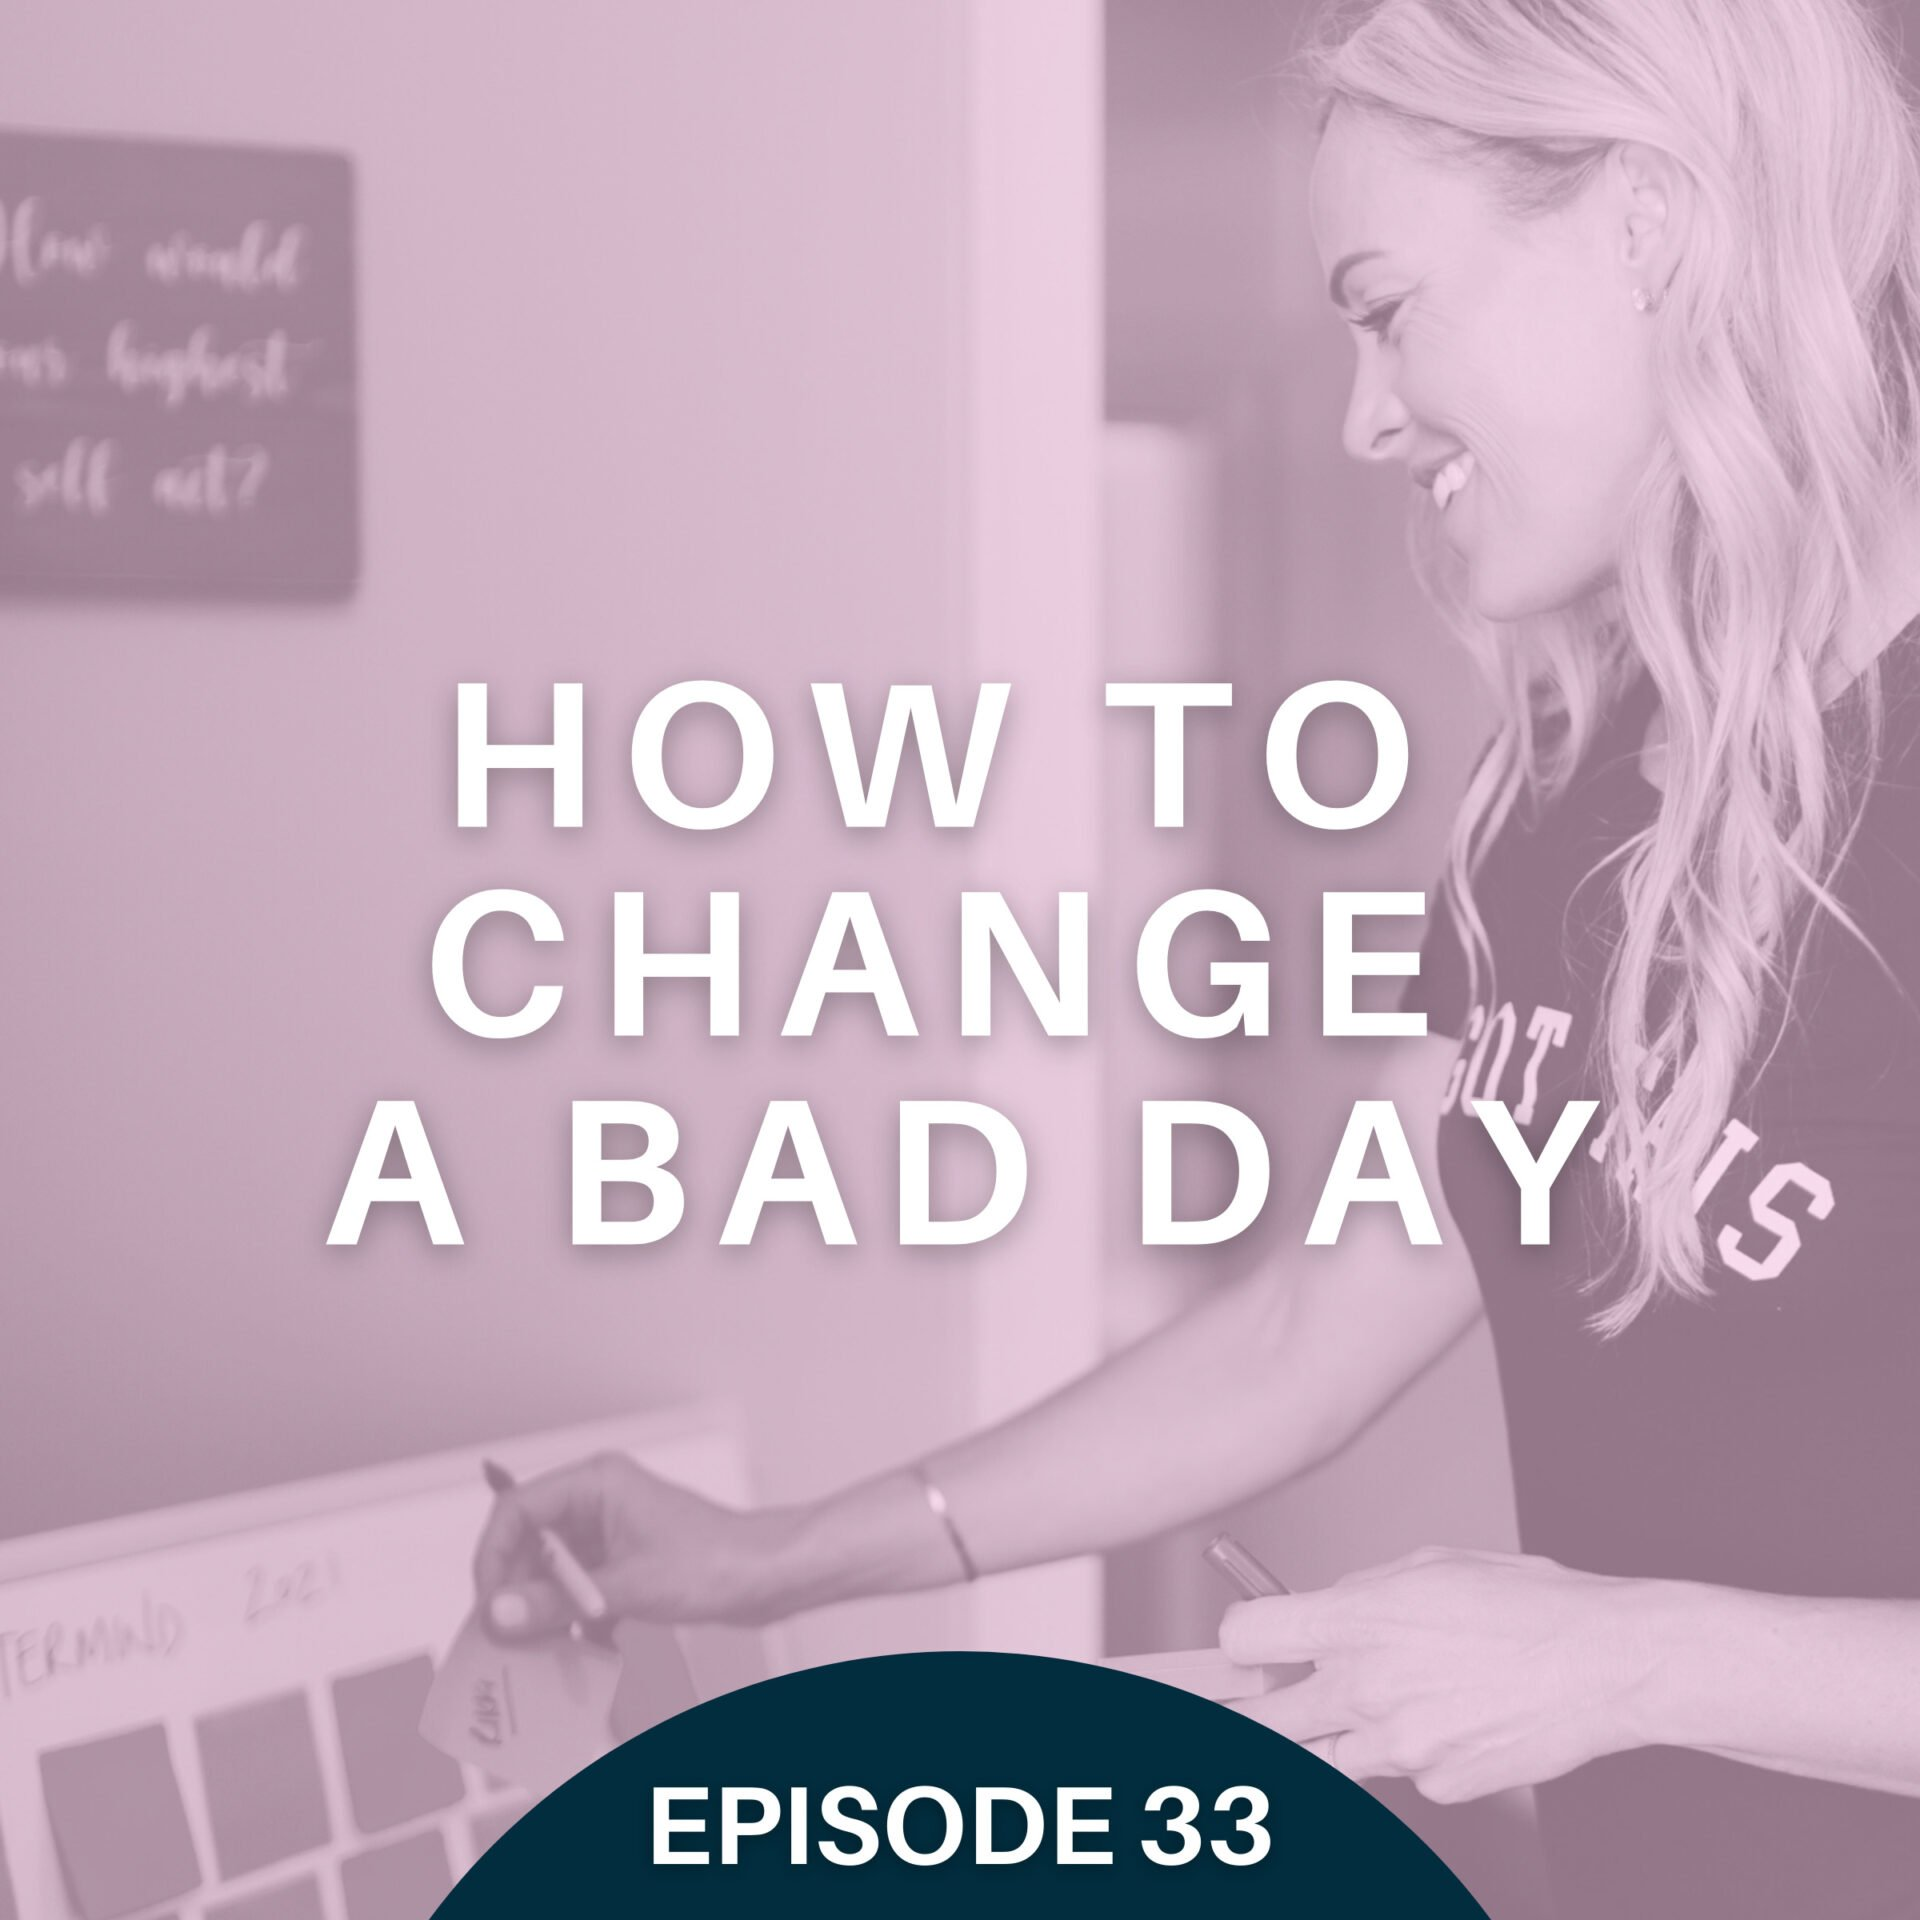 How to Get Out of a Bad Day